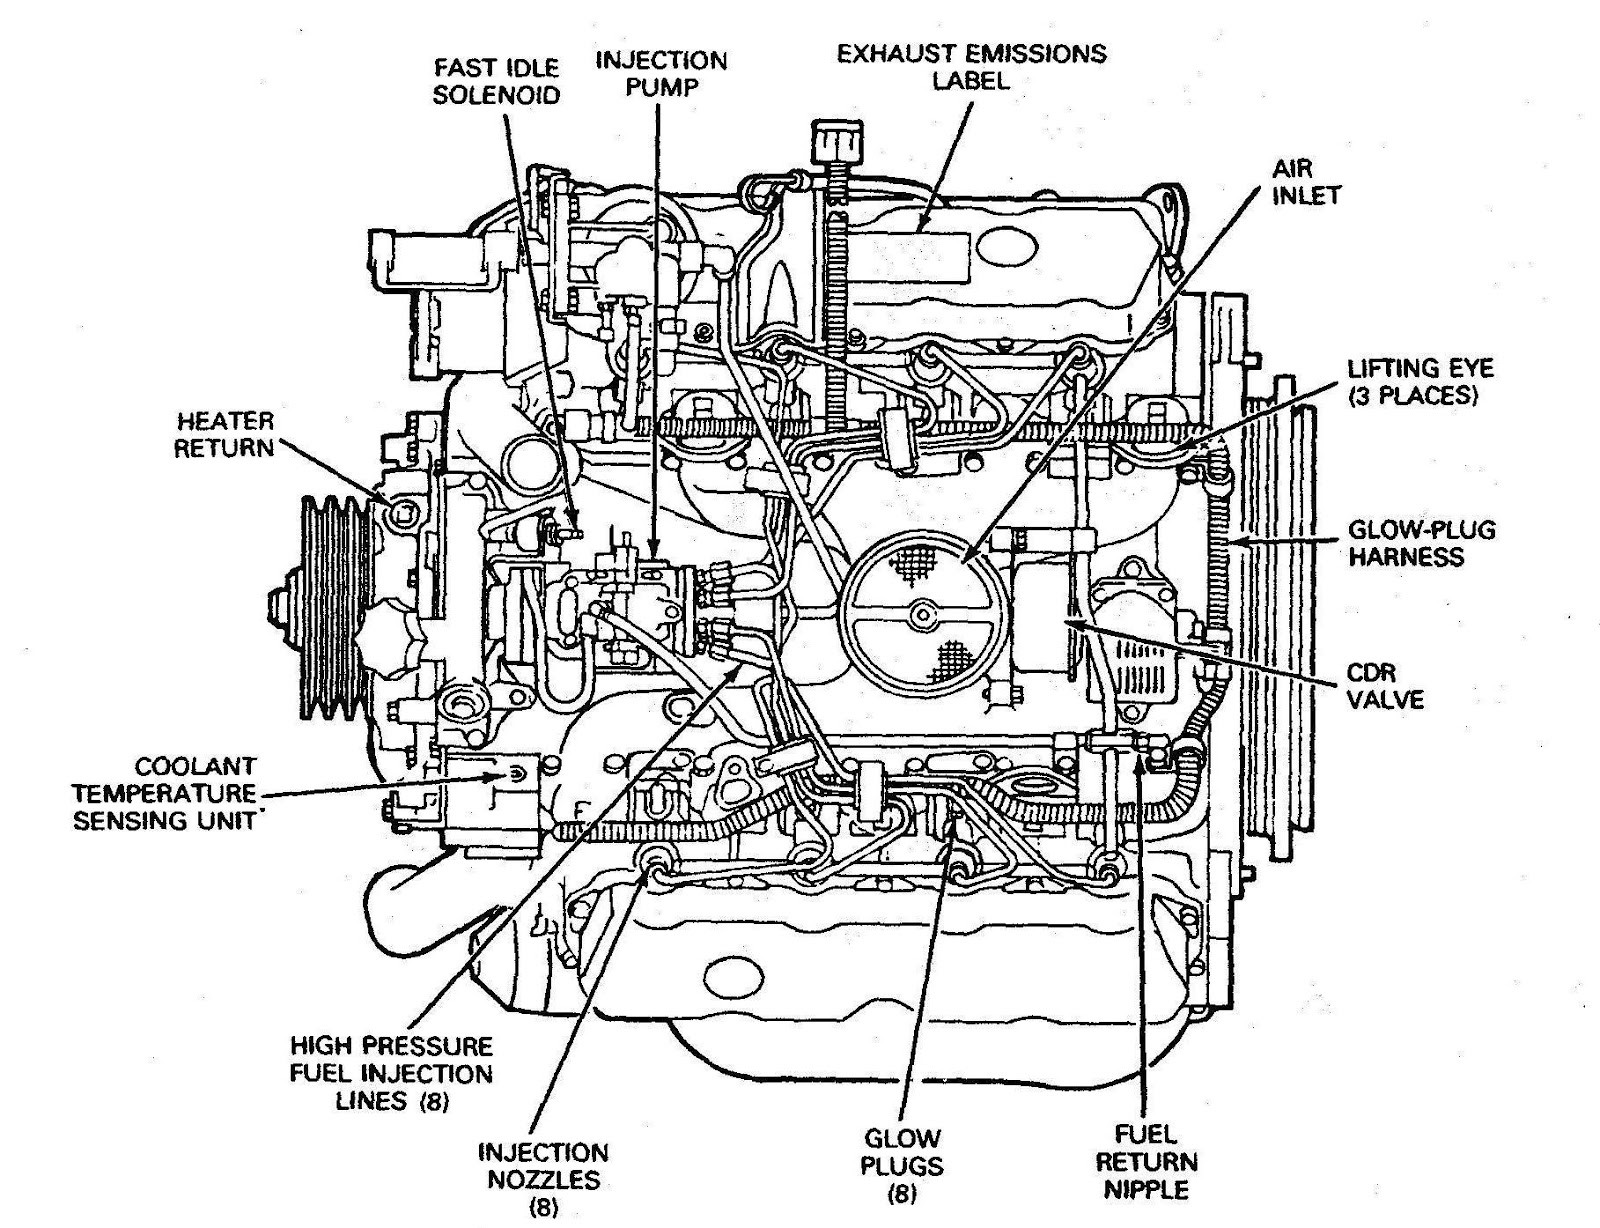 Parts Of Car Engine Diagram Cars Engine Parts Mobile Wallpapers Of Parts Of Car Engine Diagram